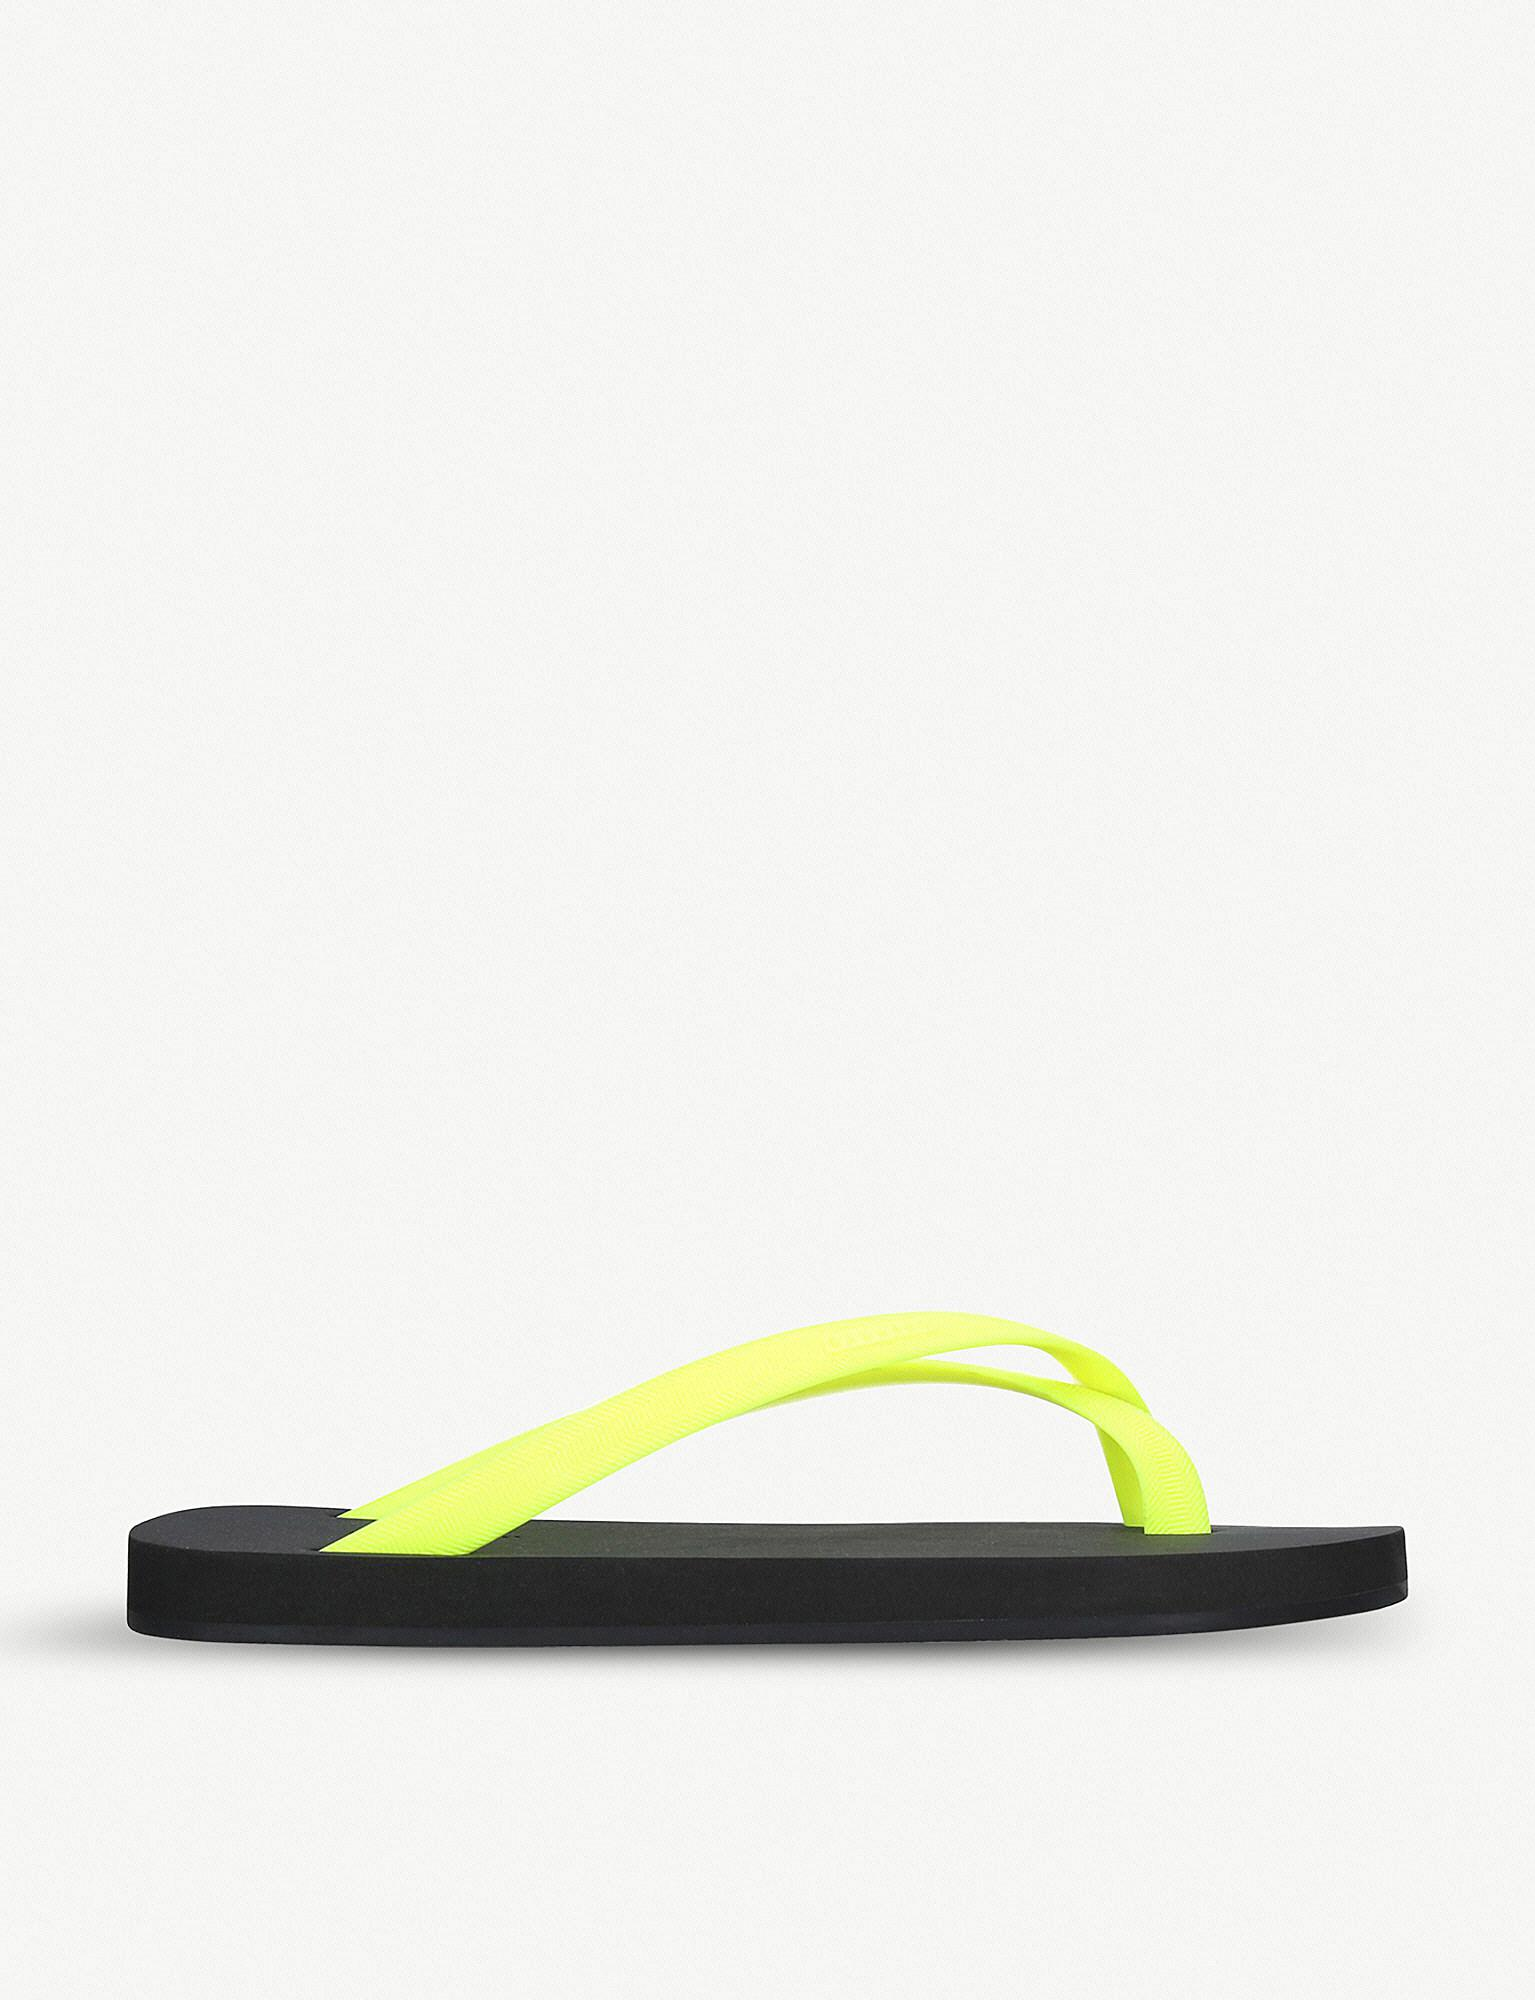 e4cffe82d80a Lyst - Danward Cross-toe Rubber Flip Flops in Yellow